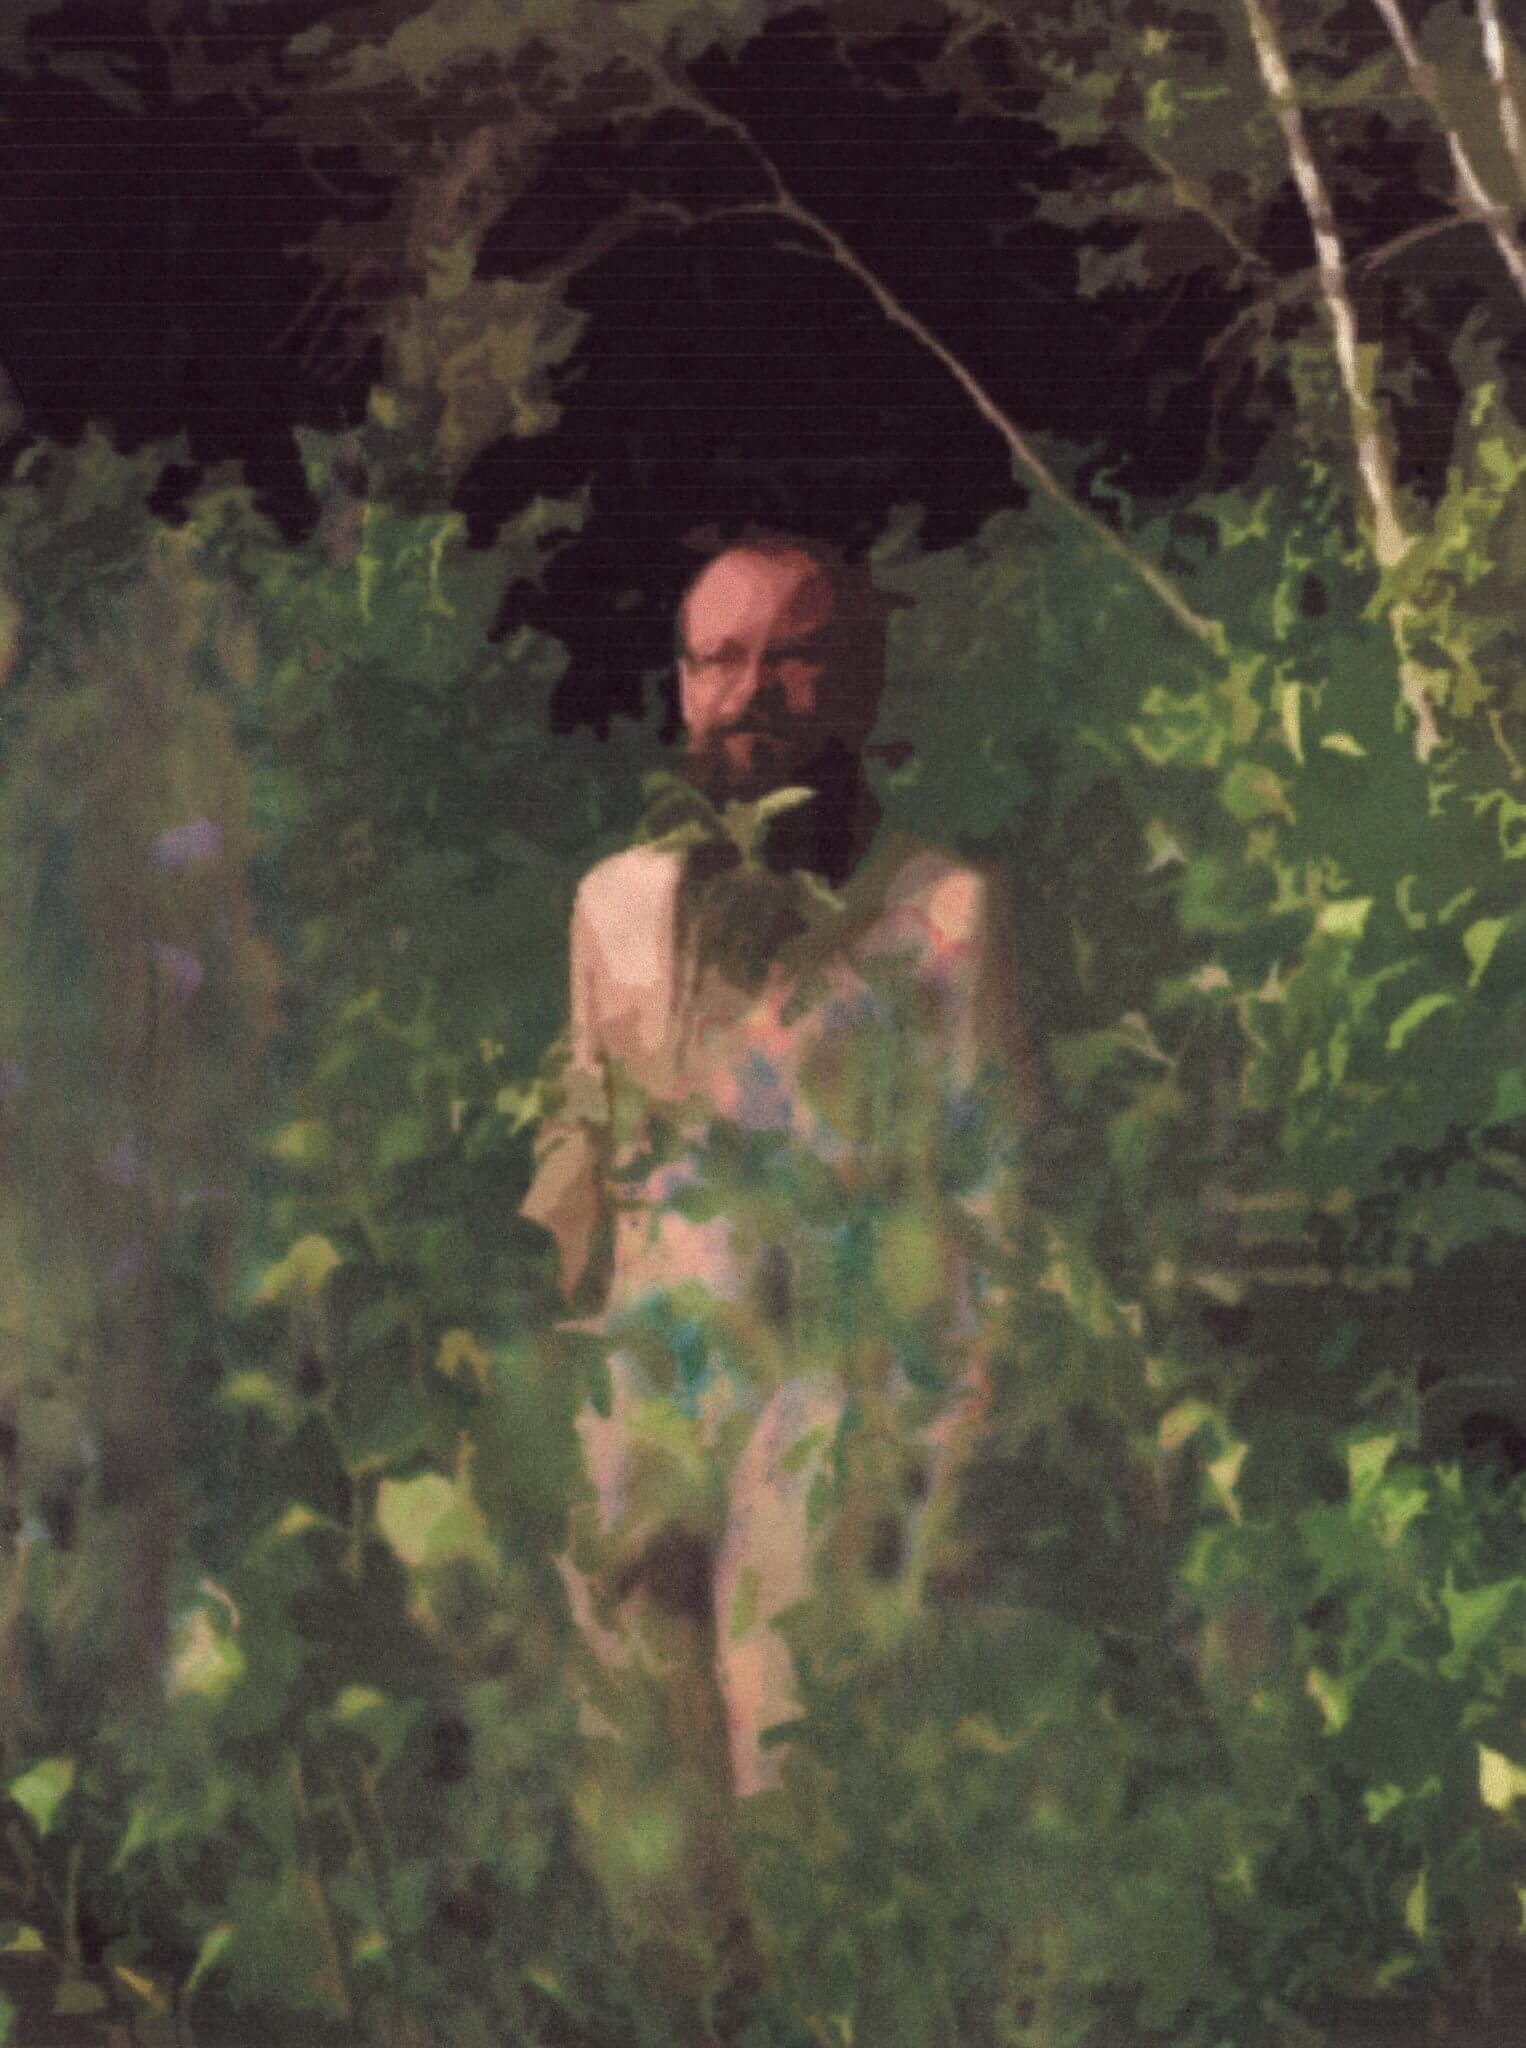 nude guy in trees3